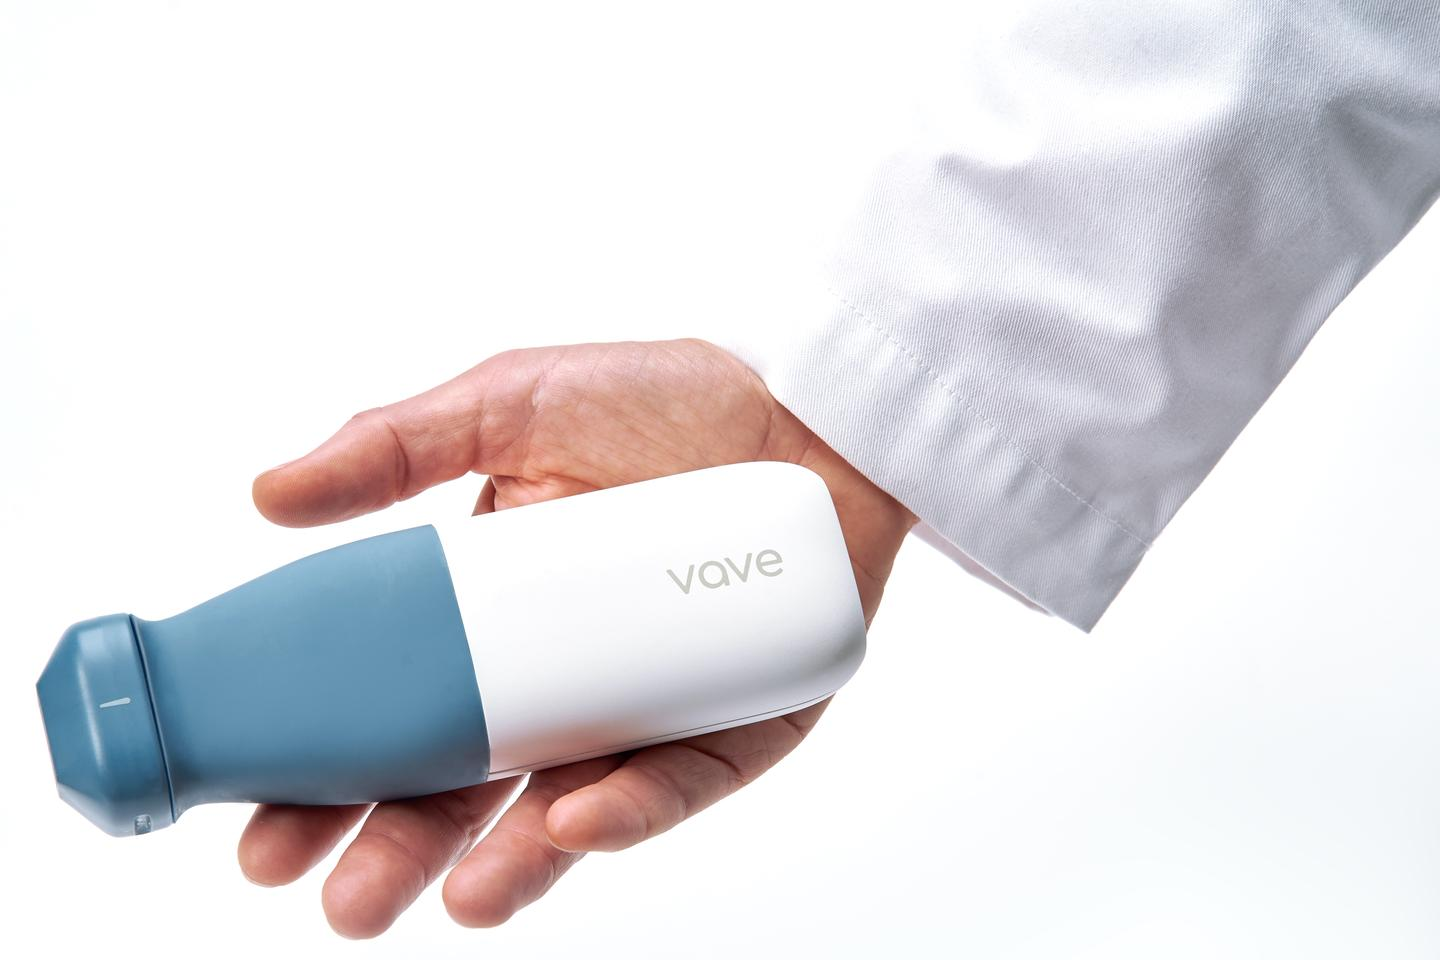 The Vave service includes on-demand access to ultrasound experts